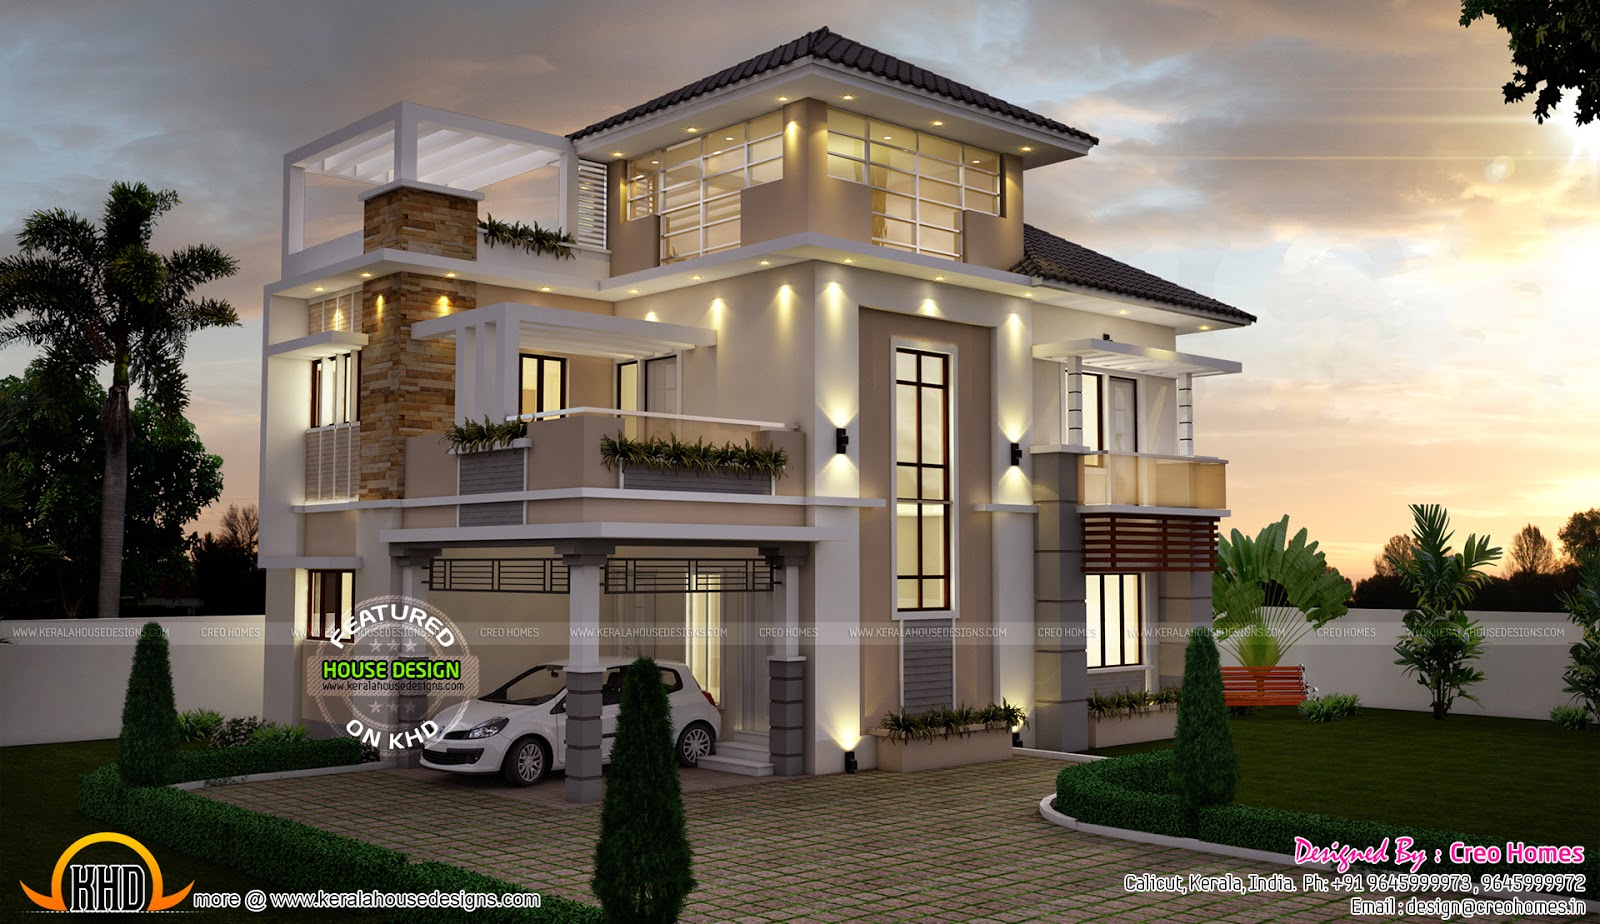 design style contemporary construction cost approximate 40 lakhs may change time to time place to place - Stylish Home Designs